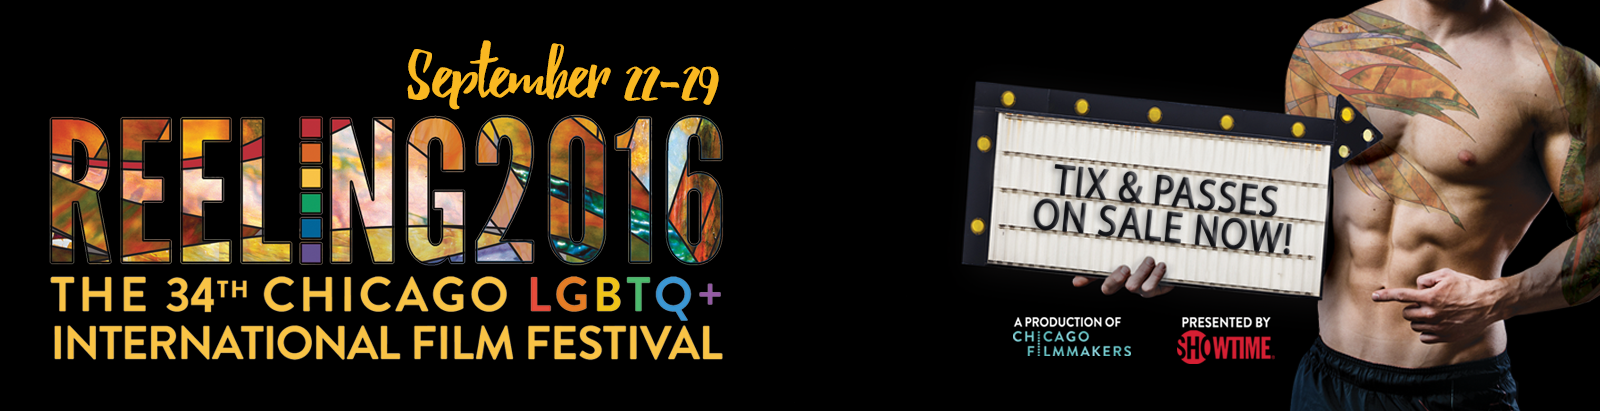 REELING2016: The 34th Chicago LGBTQ+ International Film Festival